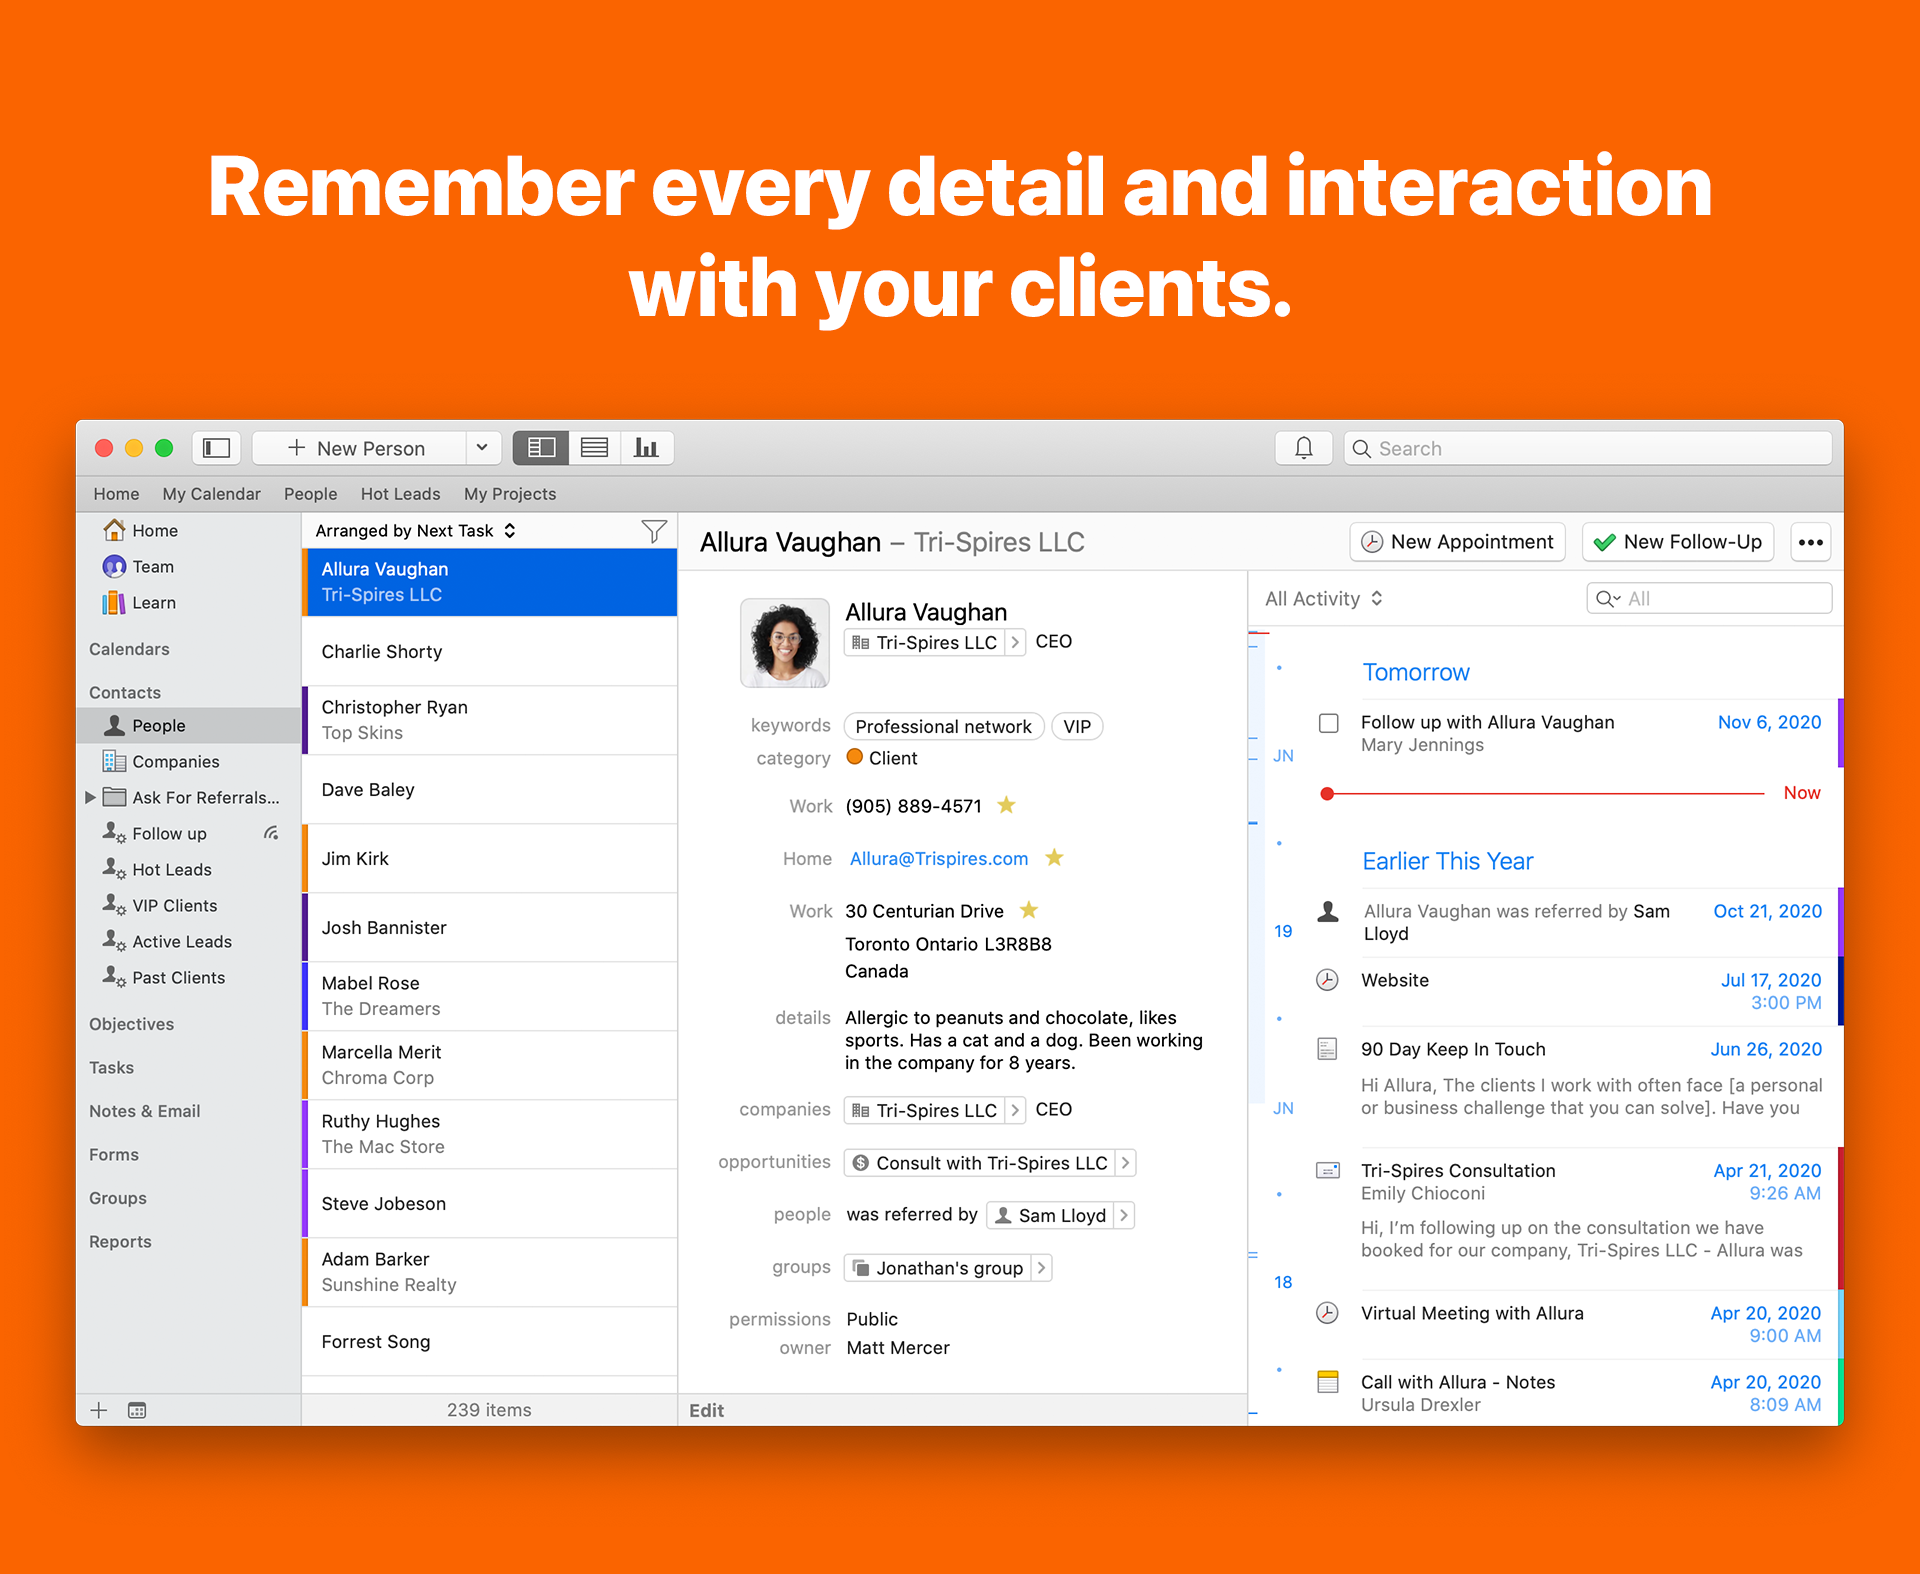 Daylite for Mac Software - Remember every detail and interaction with your clients